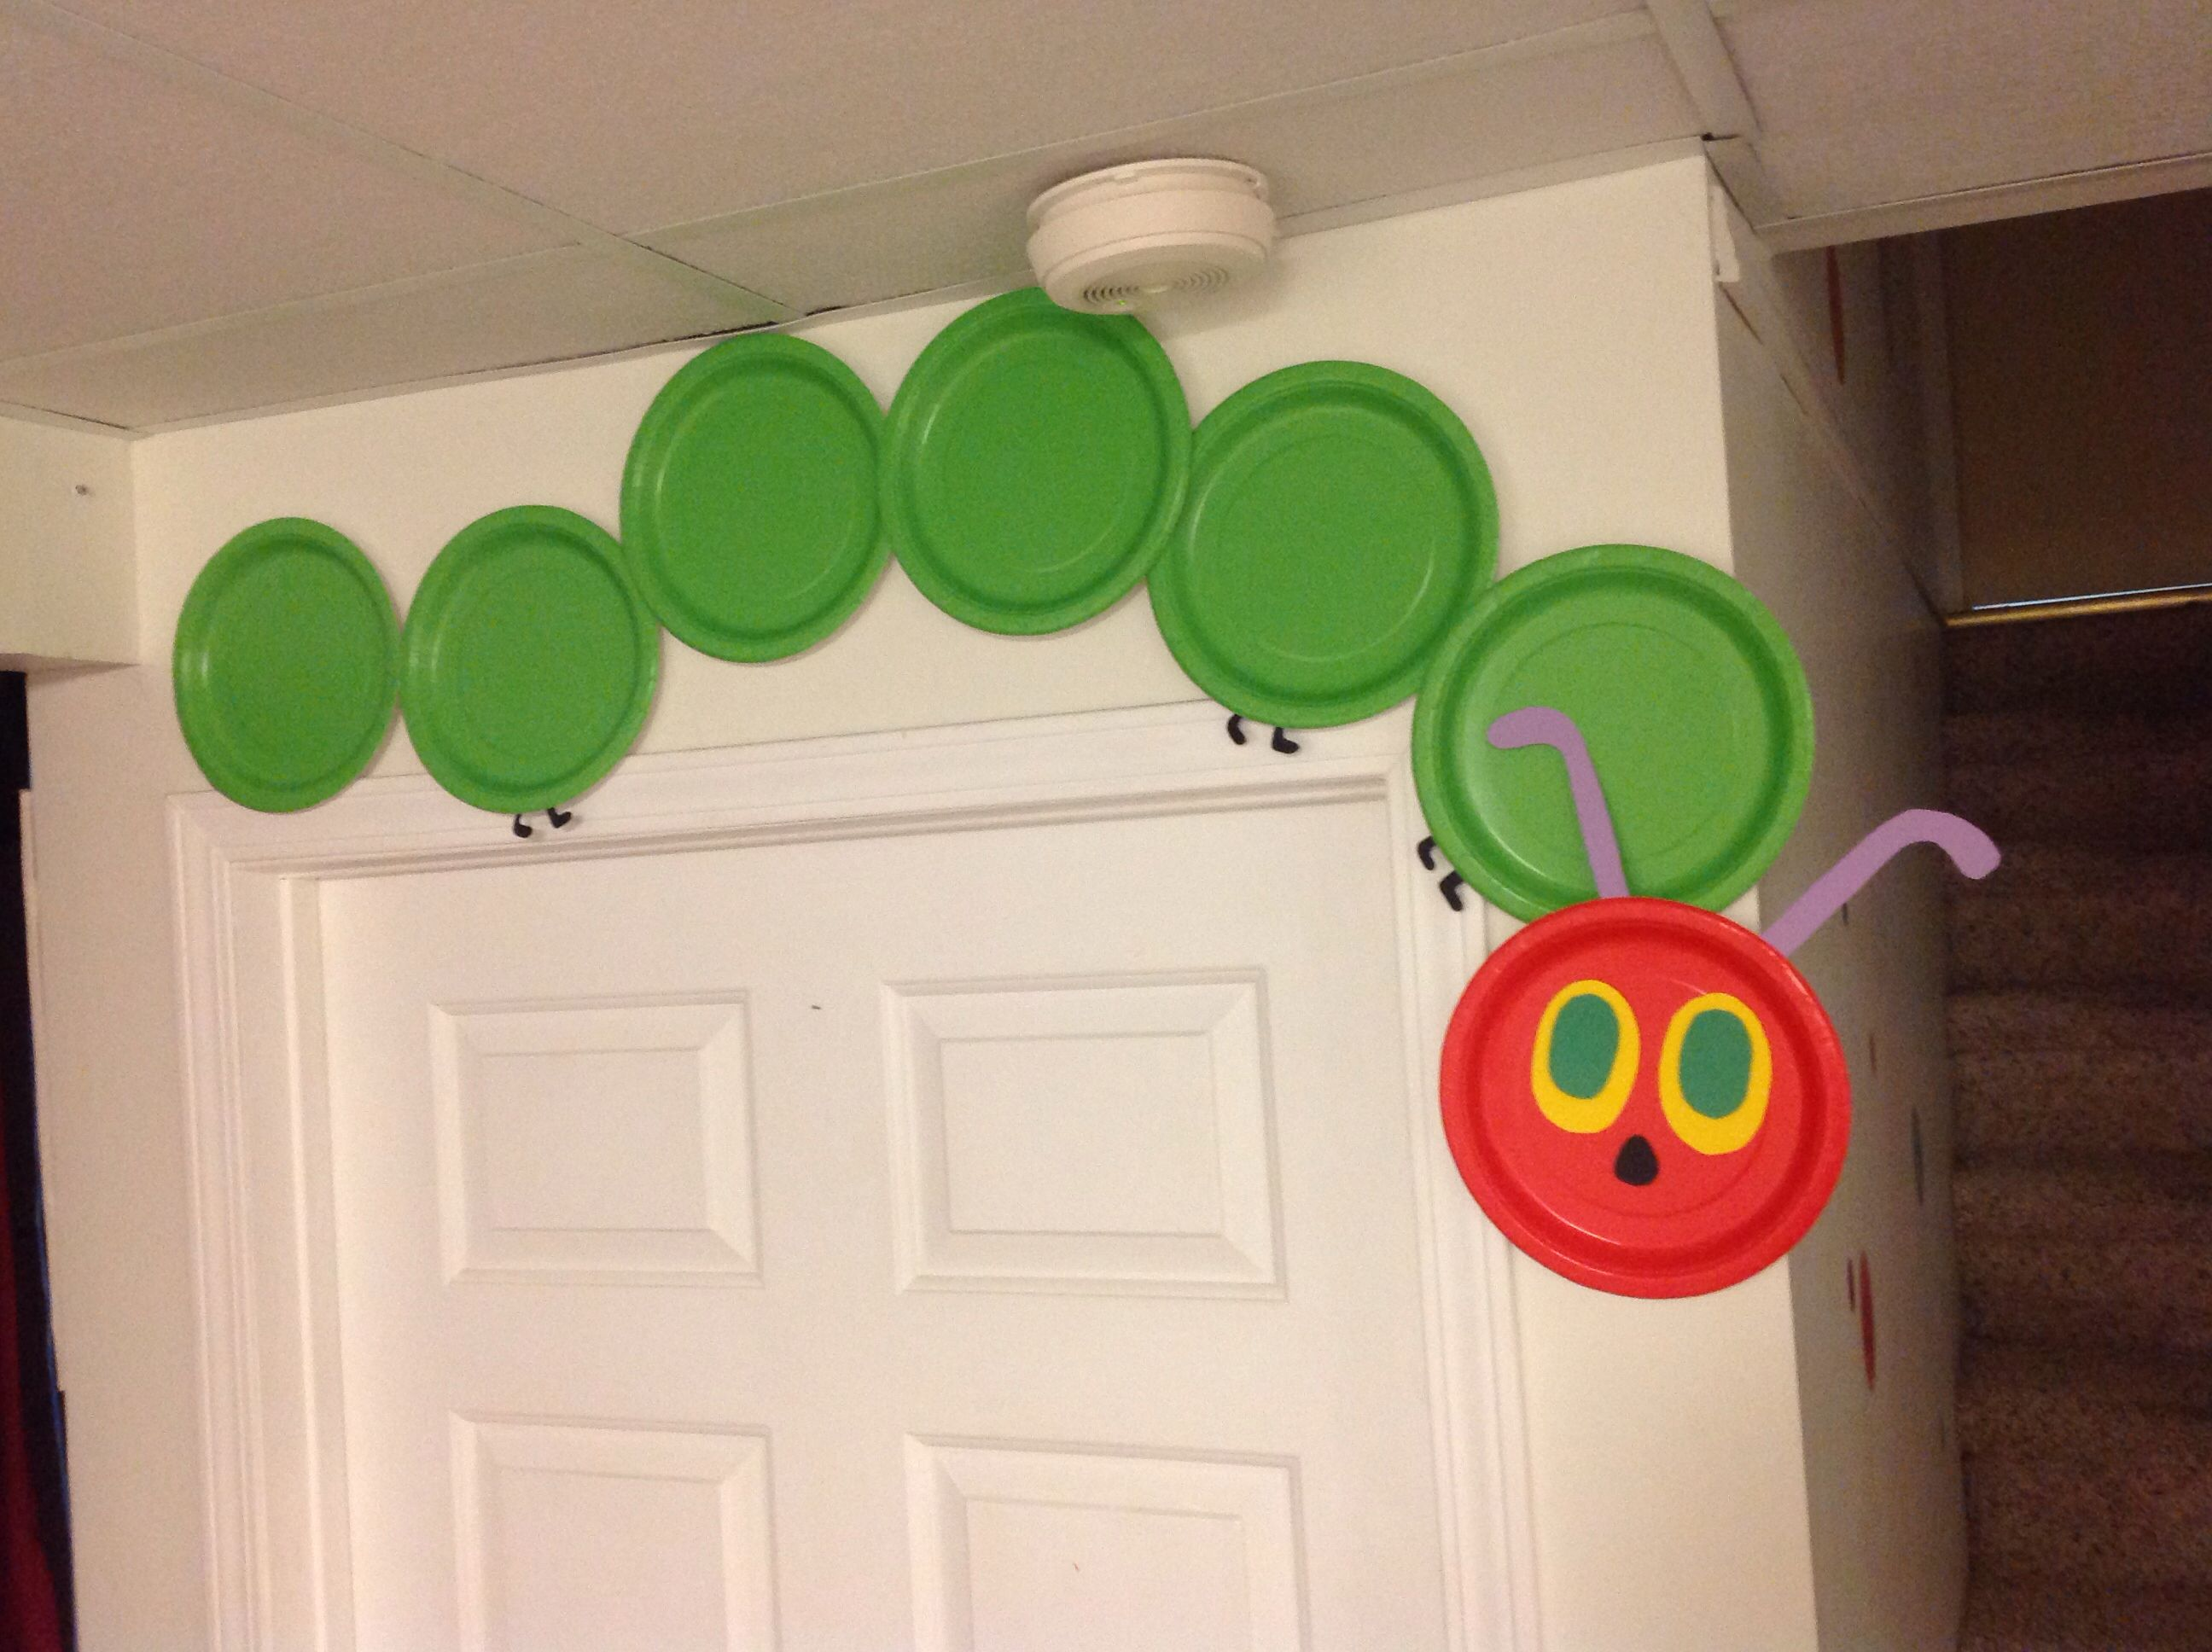 The Very Hungry Caterpillar Made With Green And Red Paper